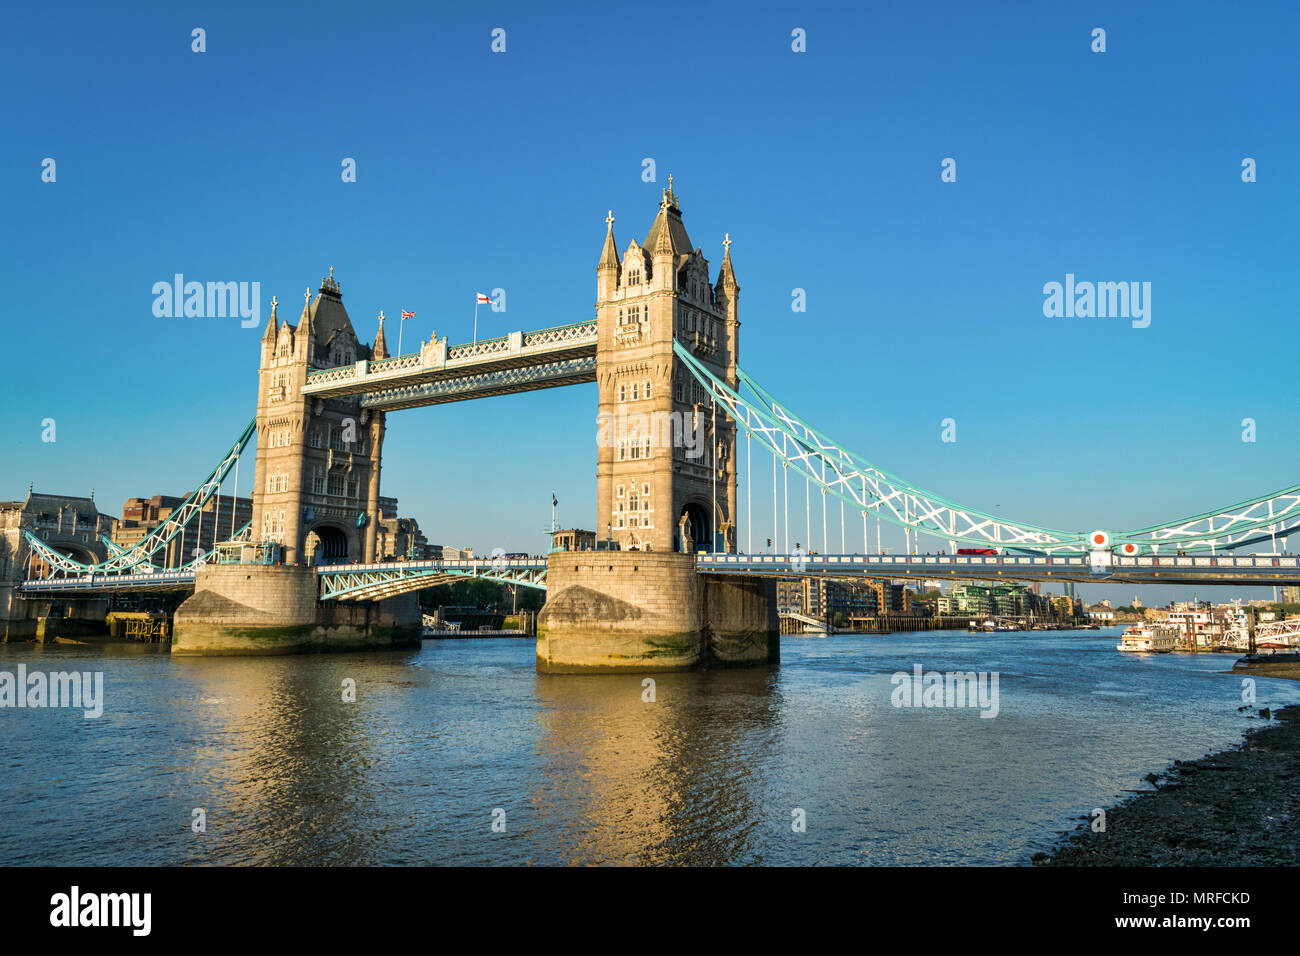 The Iconic Tower Bridge in London spanning the Thames River - Stock Image